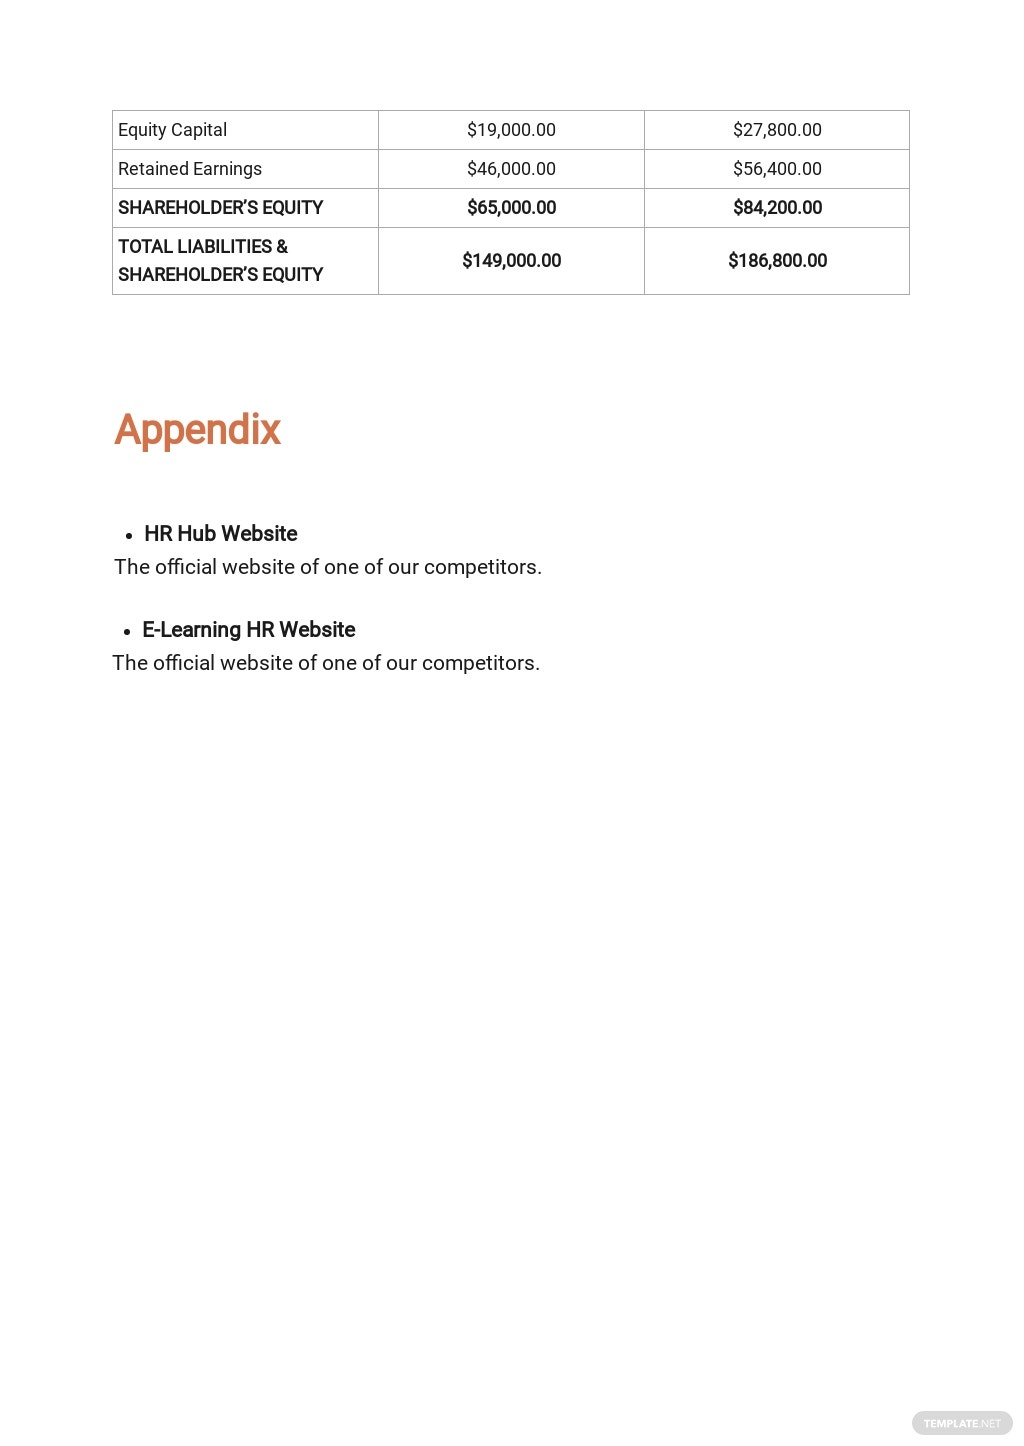 Human Resources Consulting Business Plan Template 9.jpe